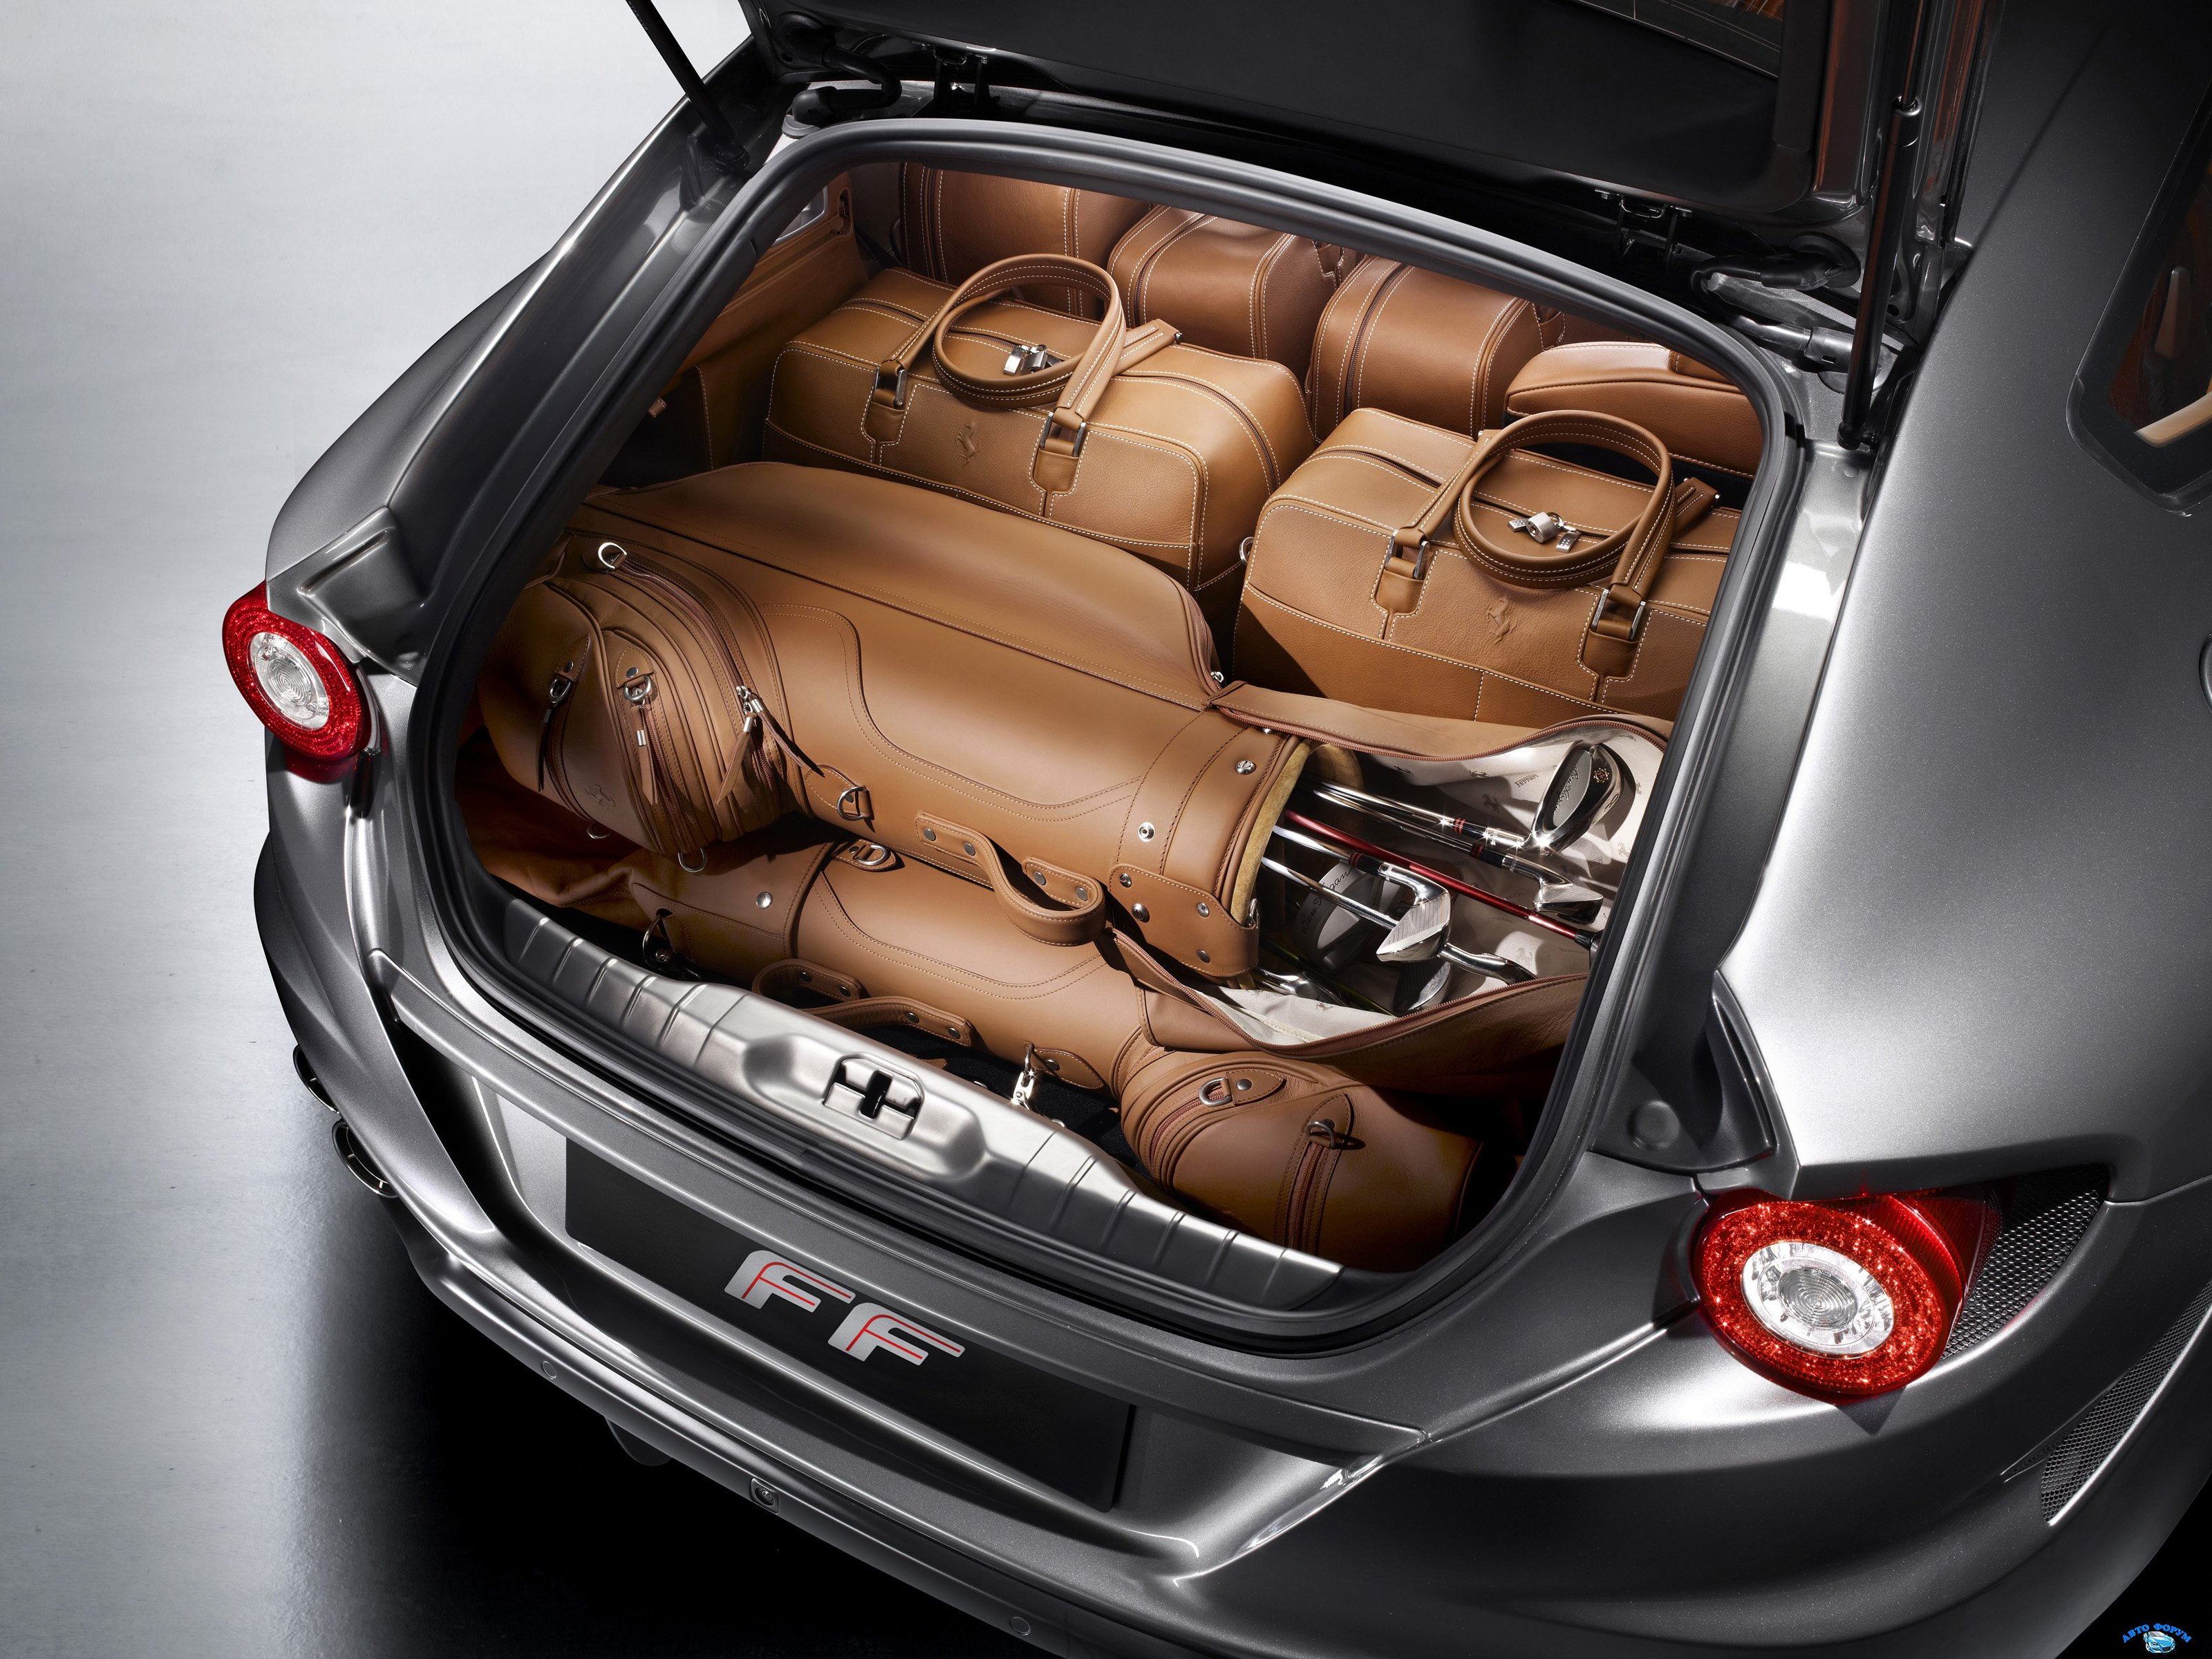 ferrari_ff_luggage_compartment_53.jpg